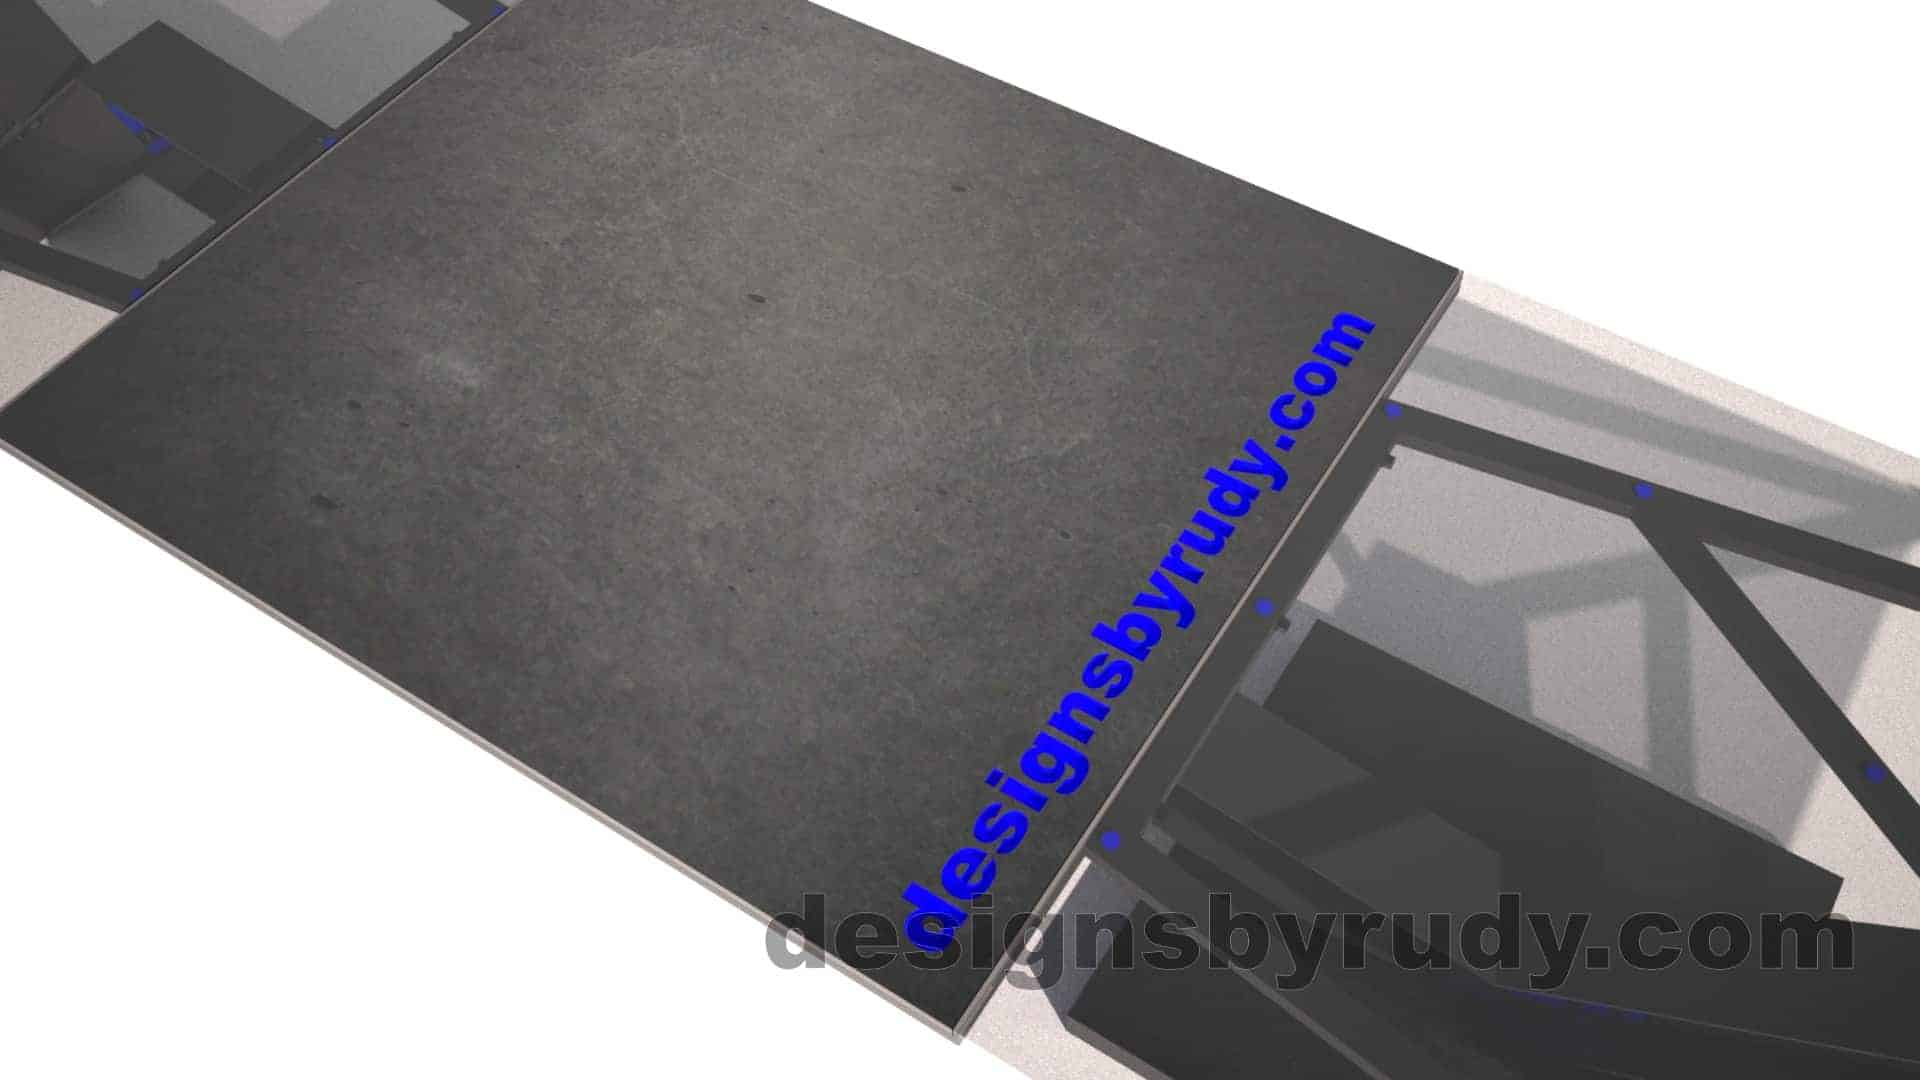 Concrete, steel, glass conference table modern design, top center concrete section closeup view